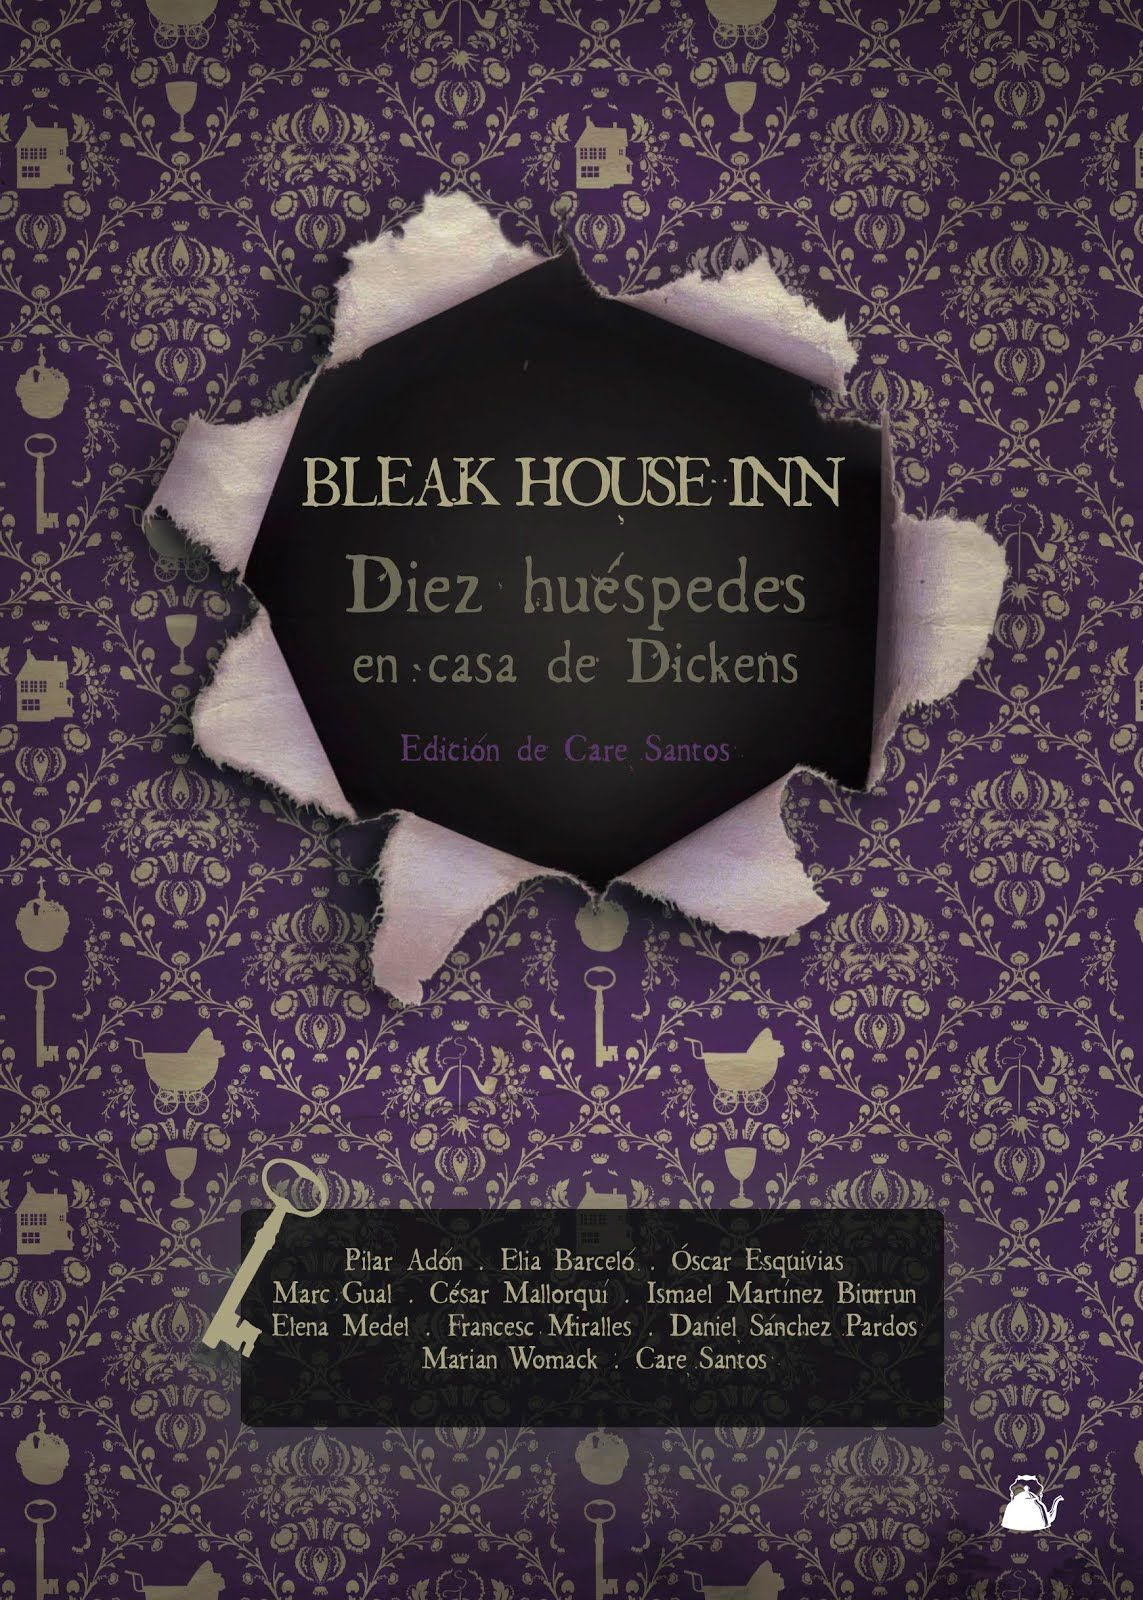 Bleak House Inn - VVAA